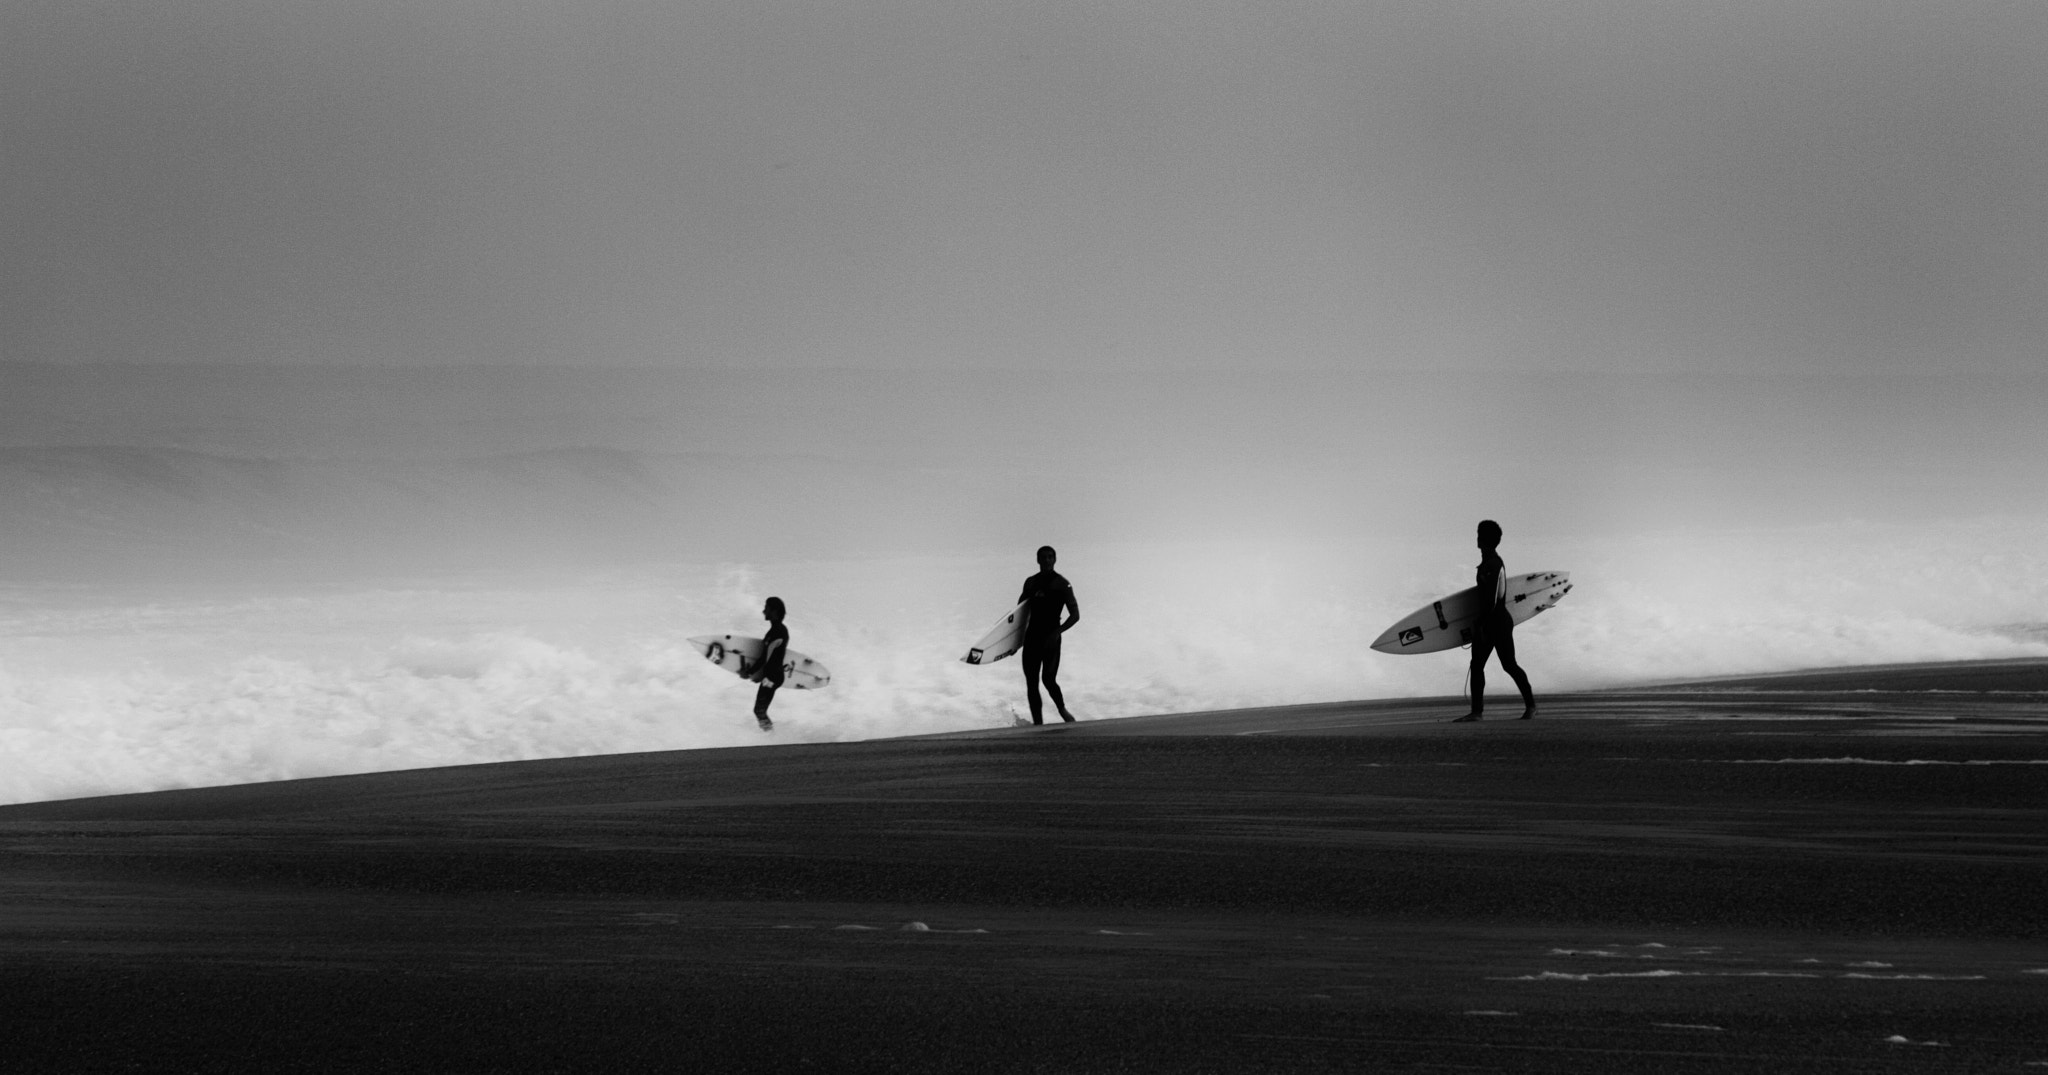 Photograph Black and white surfers by Gauthier Le Guen on 500px